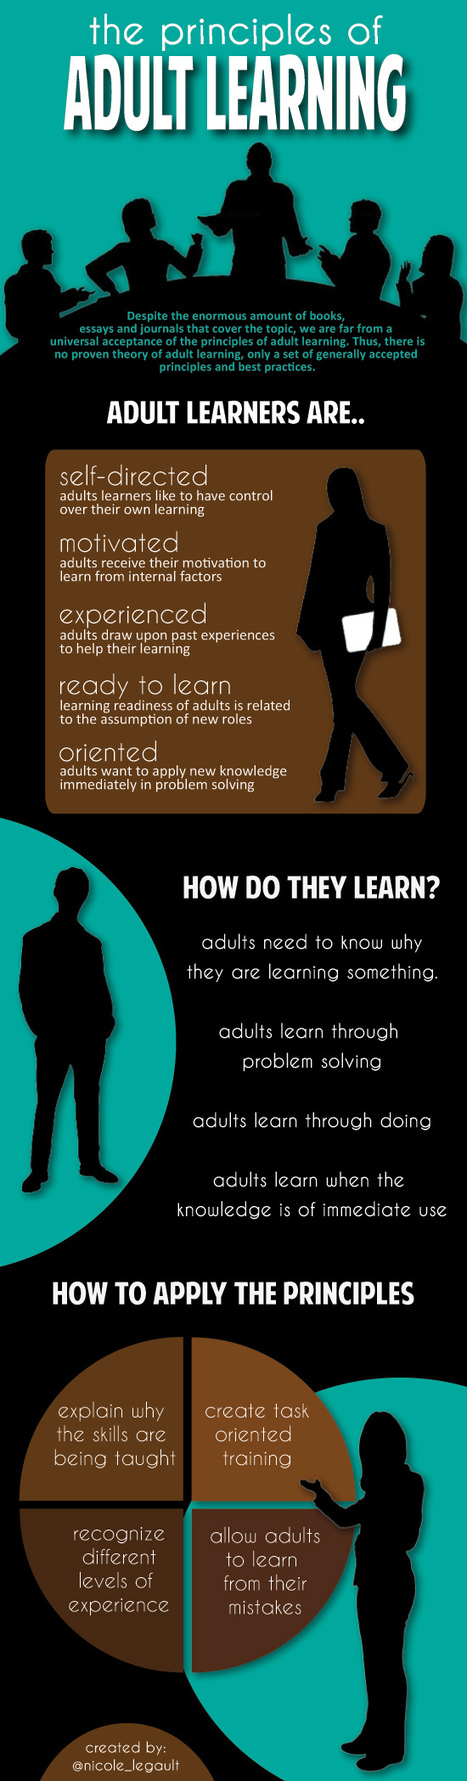 [INFOGRAPHIC] An Overview of the Principles of Adult Learning | Educational Technologies | Scoop.it